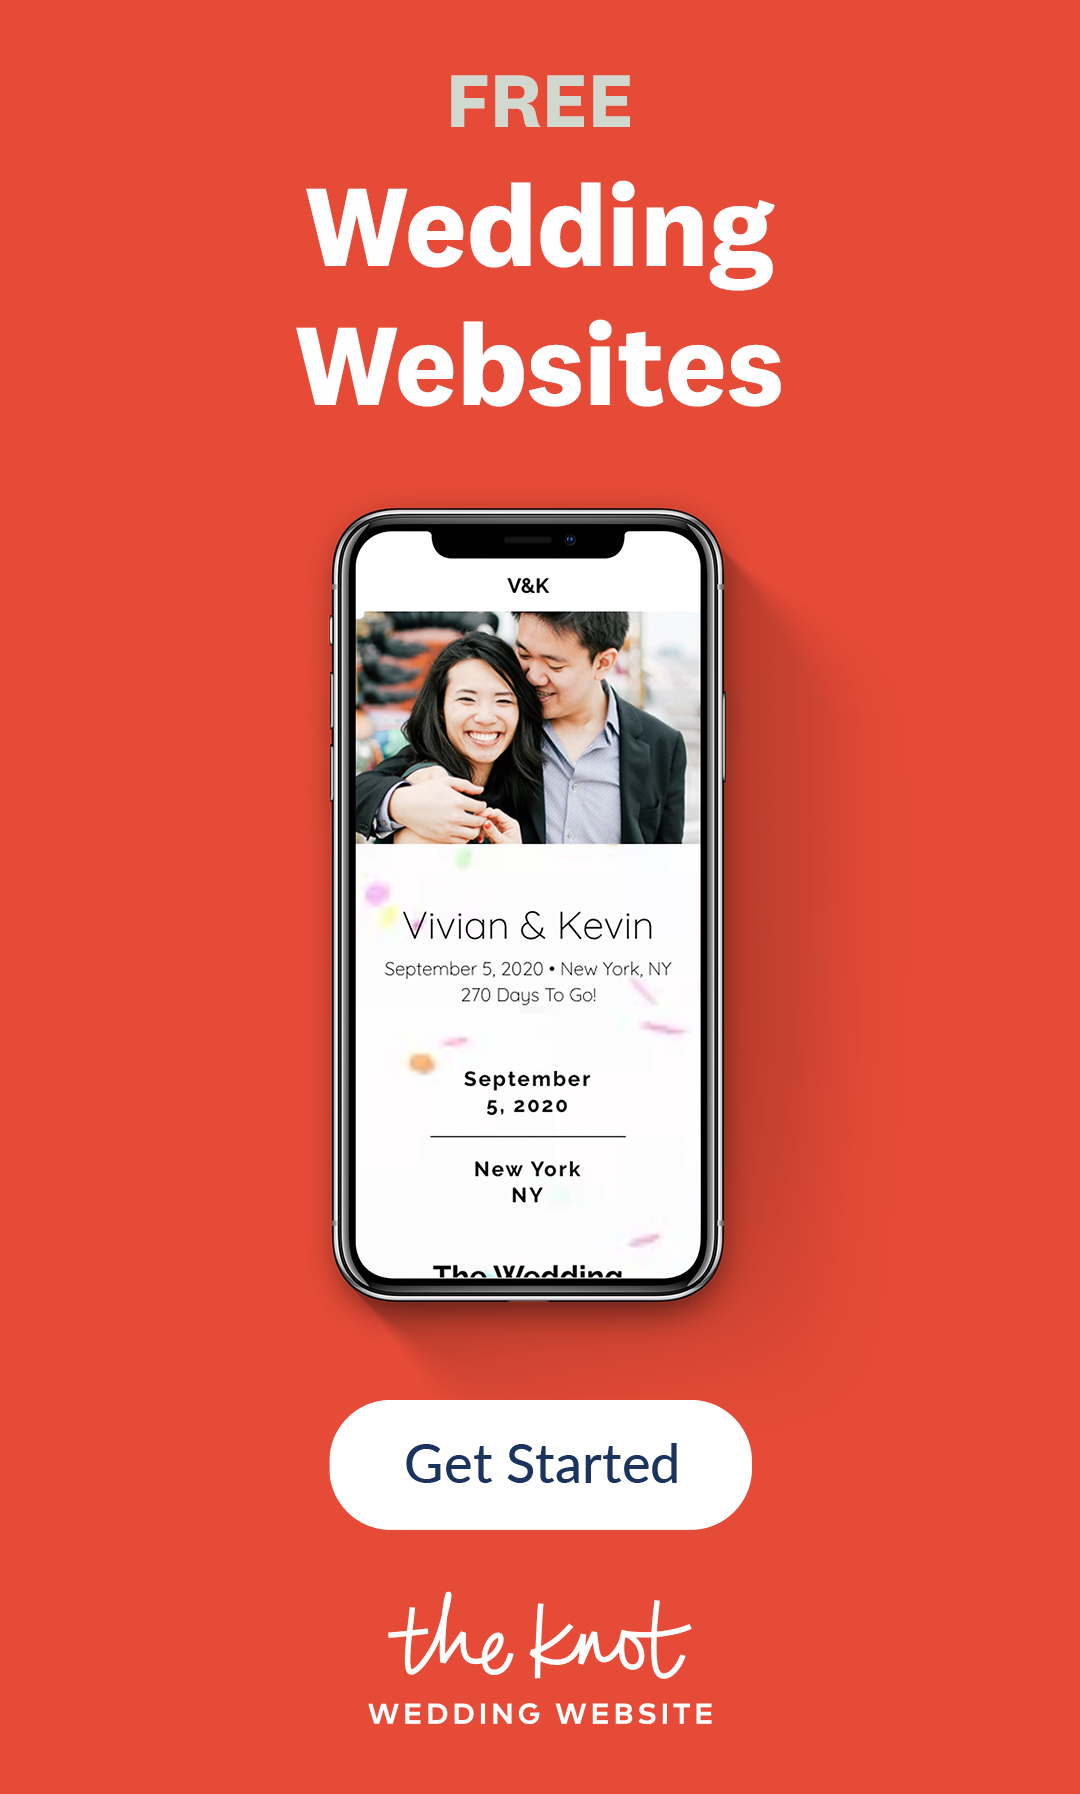 Create A Wedding Website Your Guests Will Love Online Rsvp All In One Registry Hotel Booking And Much More In 2020 Wedding Website The Knot Wedding Website Wedding